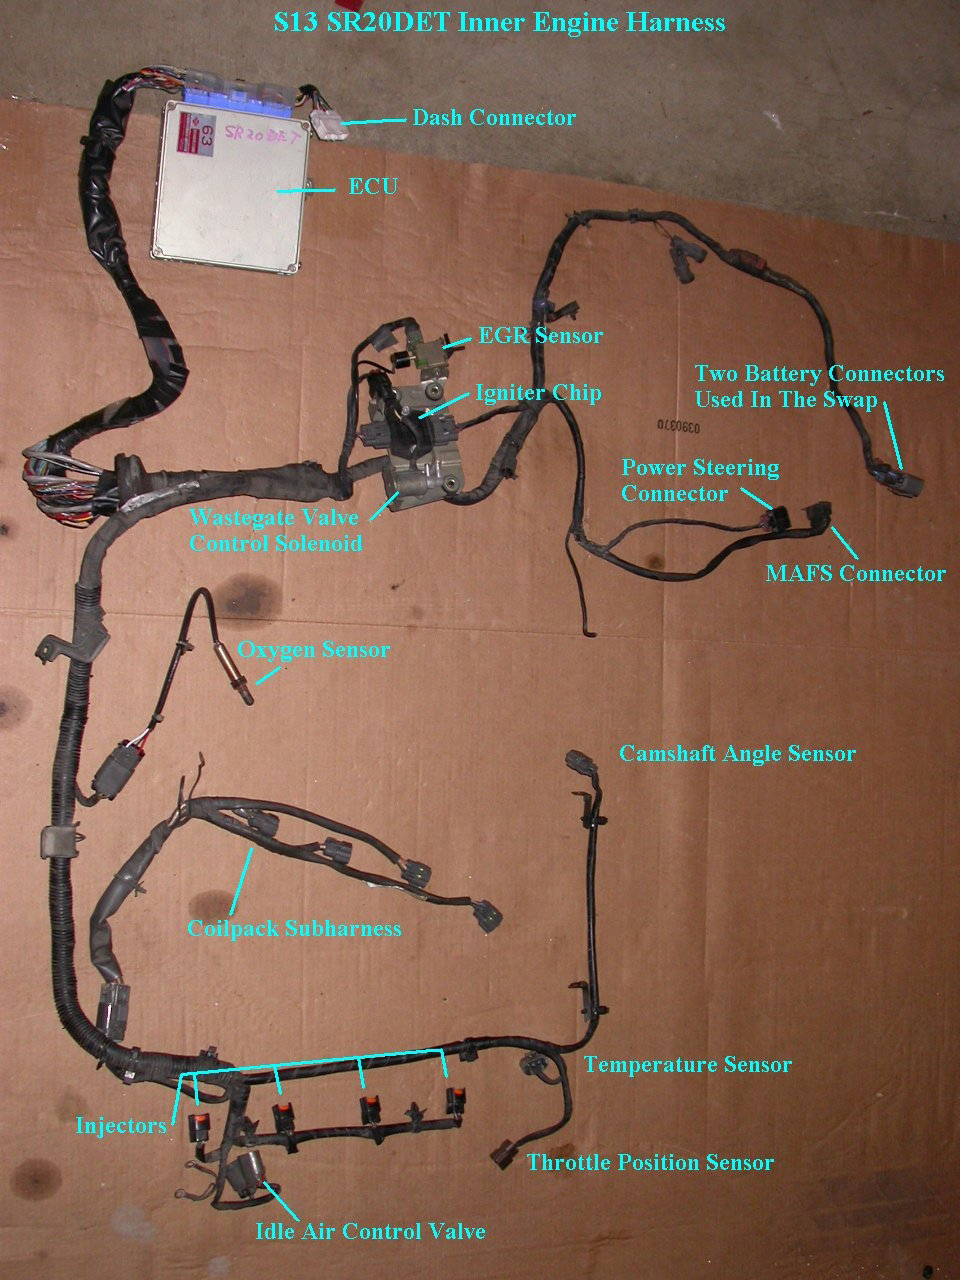 UNCUT sr20de_L vhc performance engine parts s13 sr20det wiring harness install at panicattacktreatment.co